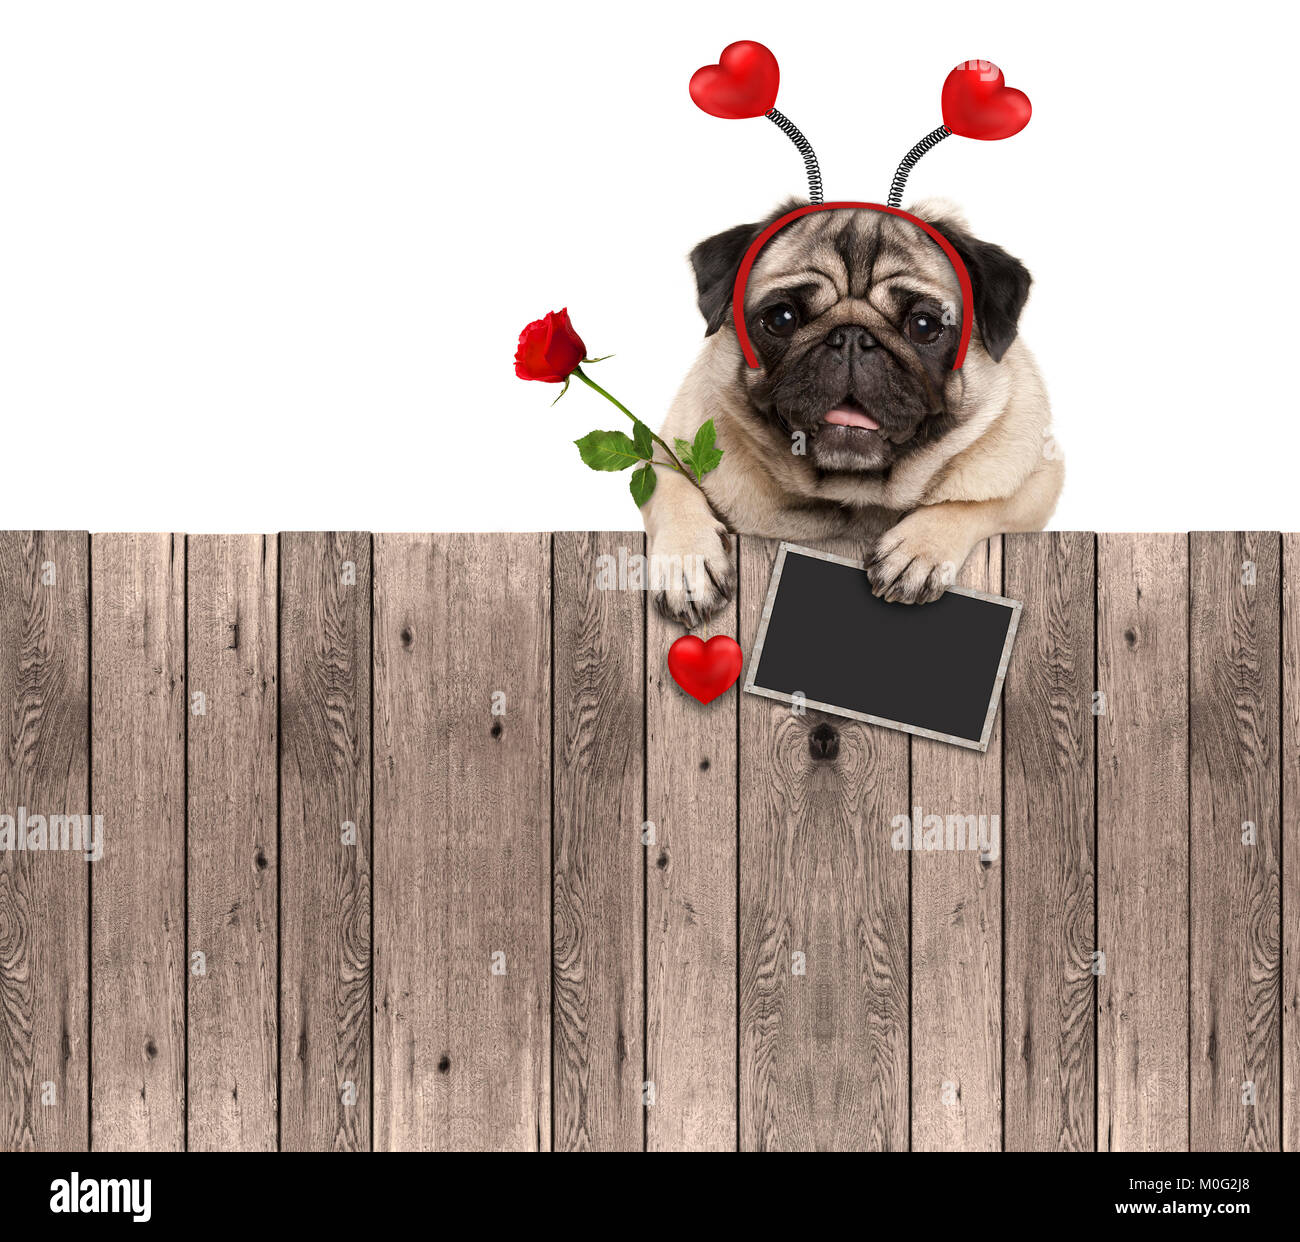 lovely pug dog with hearts diadem, blackboard and rose, hanging on wooden fence, isolated on white background - Stock Image